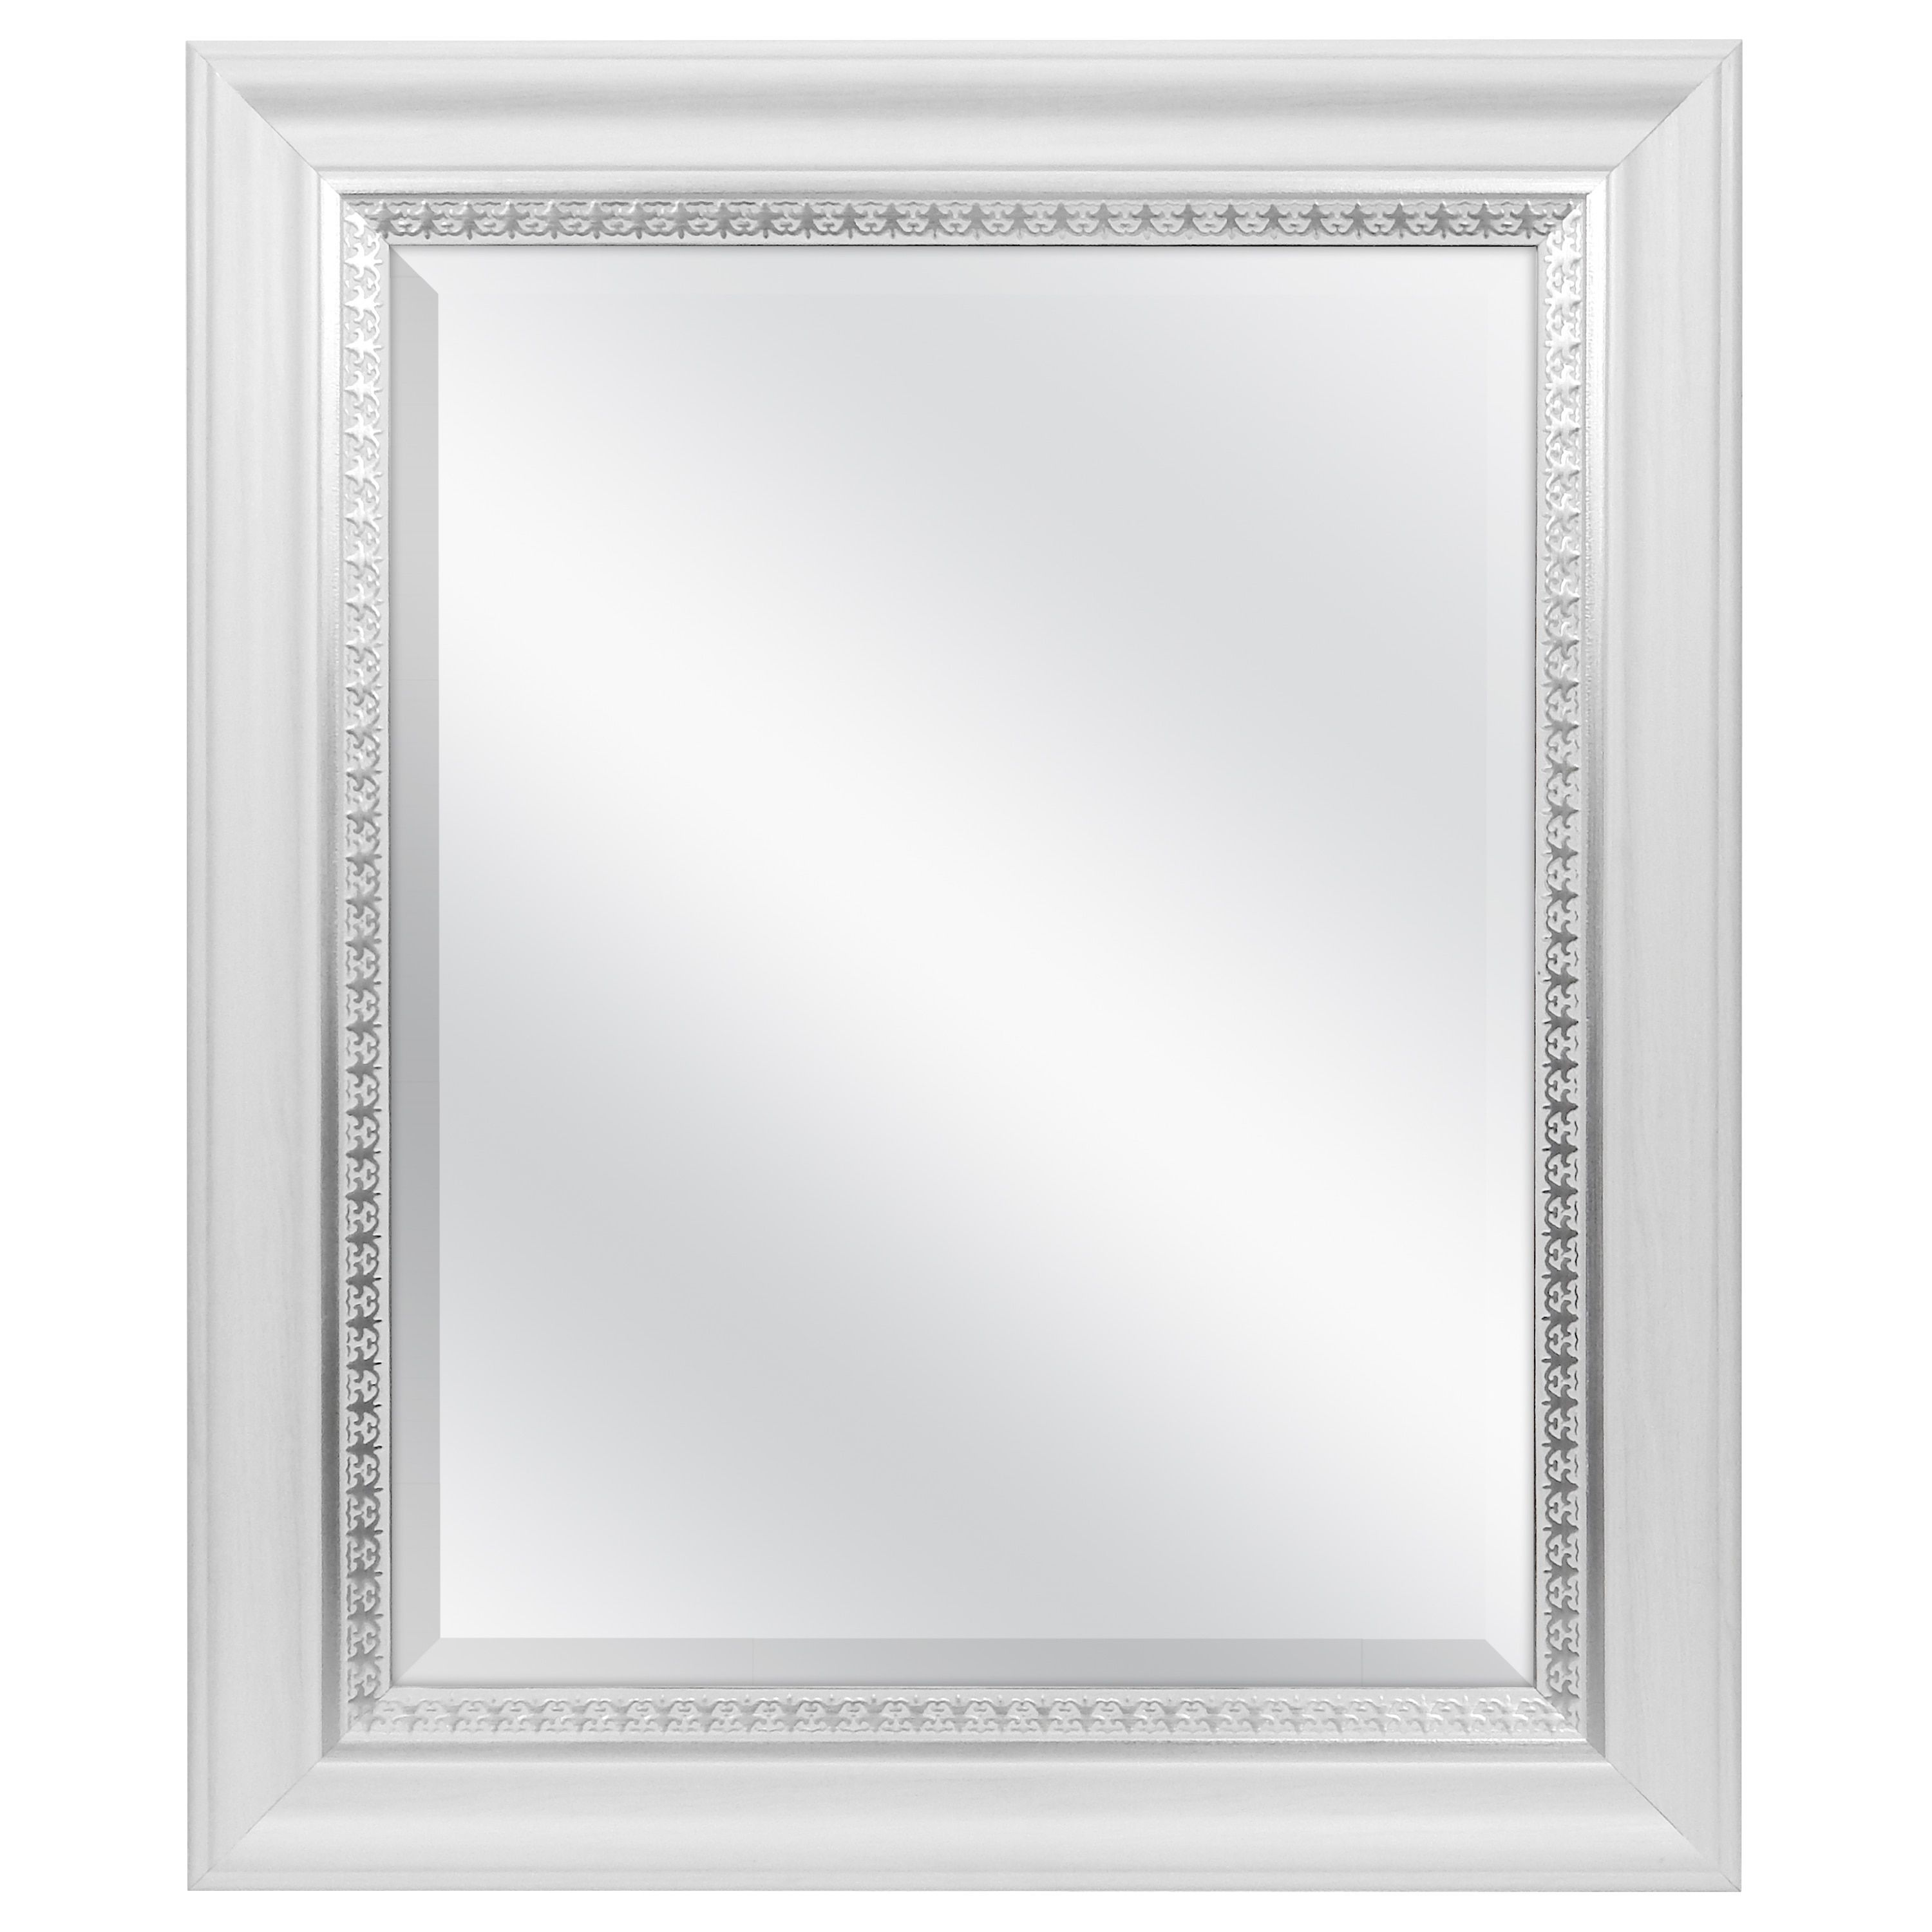 Mcs Industries White Woodgrain Wall Mirror With Silver Leaf Accent W